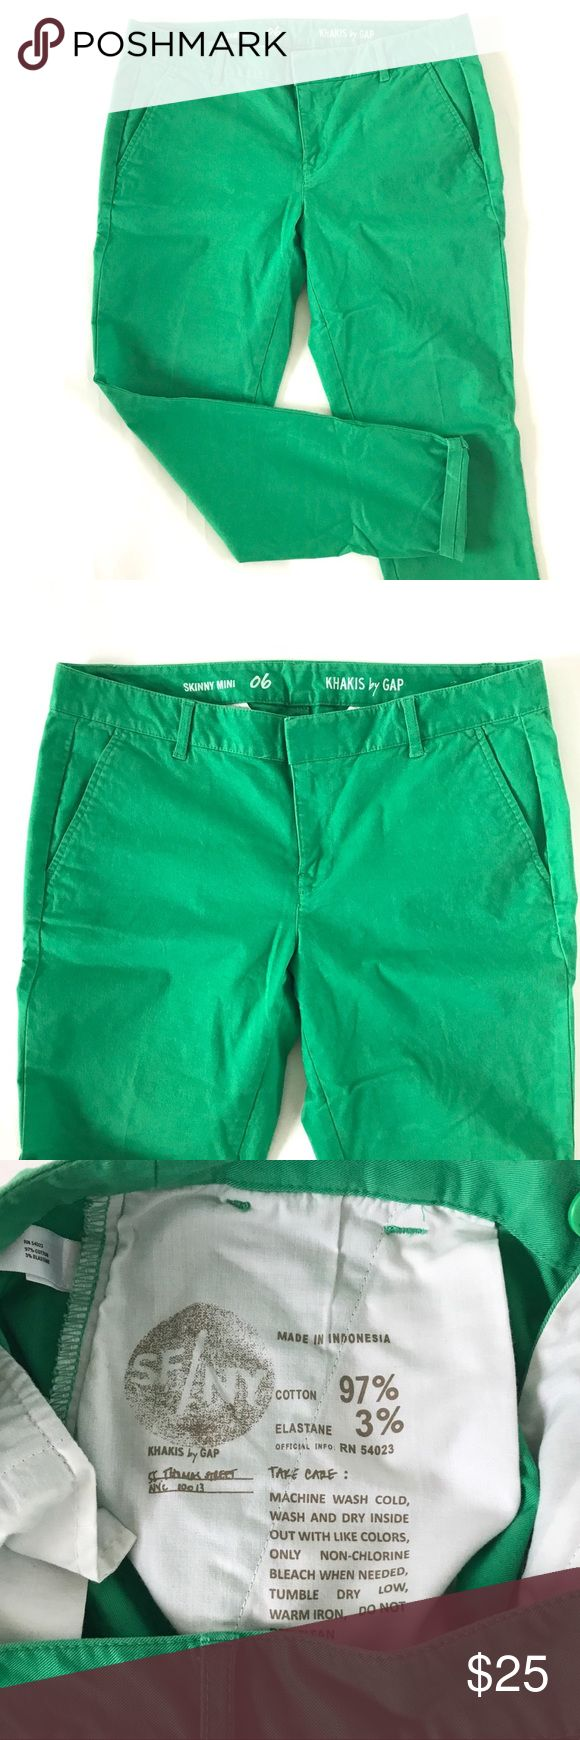 "GAP Skinny Mini Green Skinny Khaki Pant Waist 15.5"", rise 8.5"", inseam 27"". Excellent condition. Super cute and comfortable stretch skinny khakis! GAP Pants Skinny"